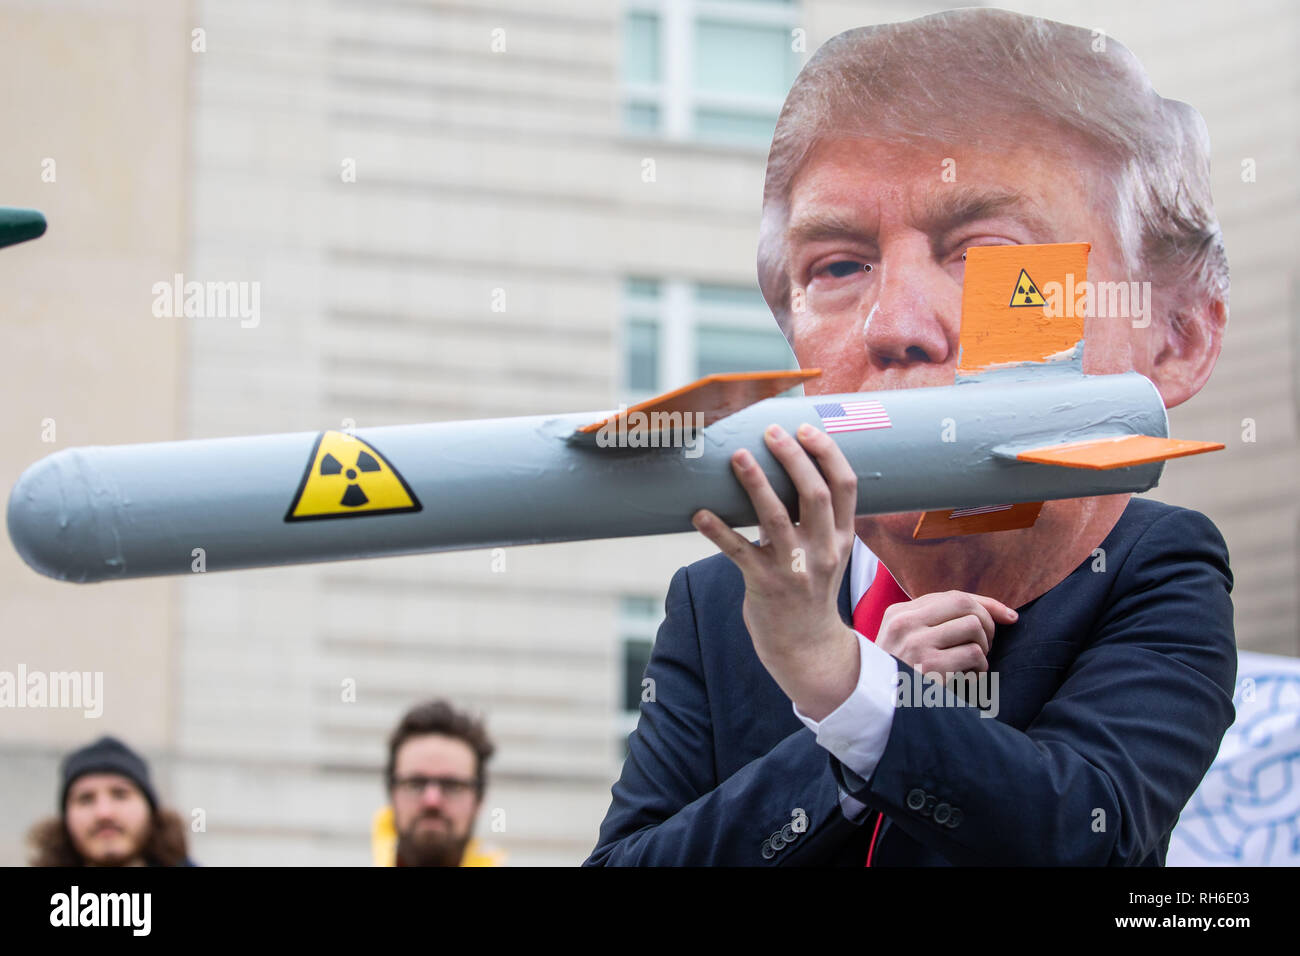 Berlin, Berlin, Germany. 1st Feb, 2019. Activists wear masks to look like U.S president Donald Trump and Russian President Vladimir Putin and hold mockup models of nuclear missiles, during a protest for the INF treaty in front of the American embassy in Berlin, Germany, February 1, 2019. On February 2, 2019, the deadline set by US President Donald Trump Russia for the disarmament of the Iskandar -rocket system ends, The US sees in the system a violation of the INF Treaty, which prohibits the possession of nuclear medium-range systems. For its part, Russia accuses the USA of violating the Credi - Stock Image